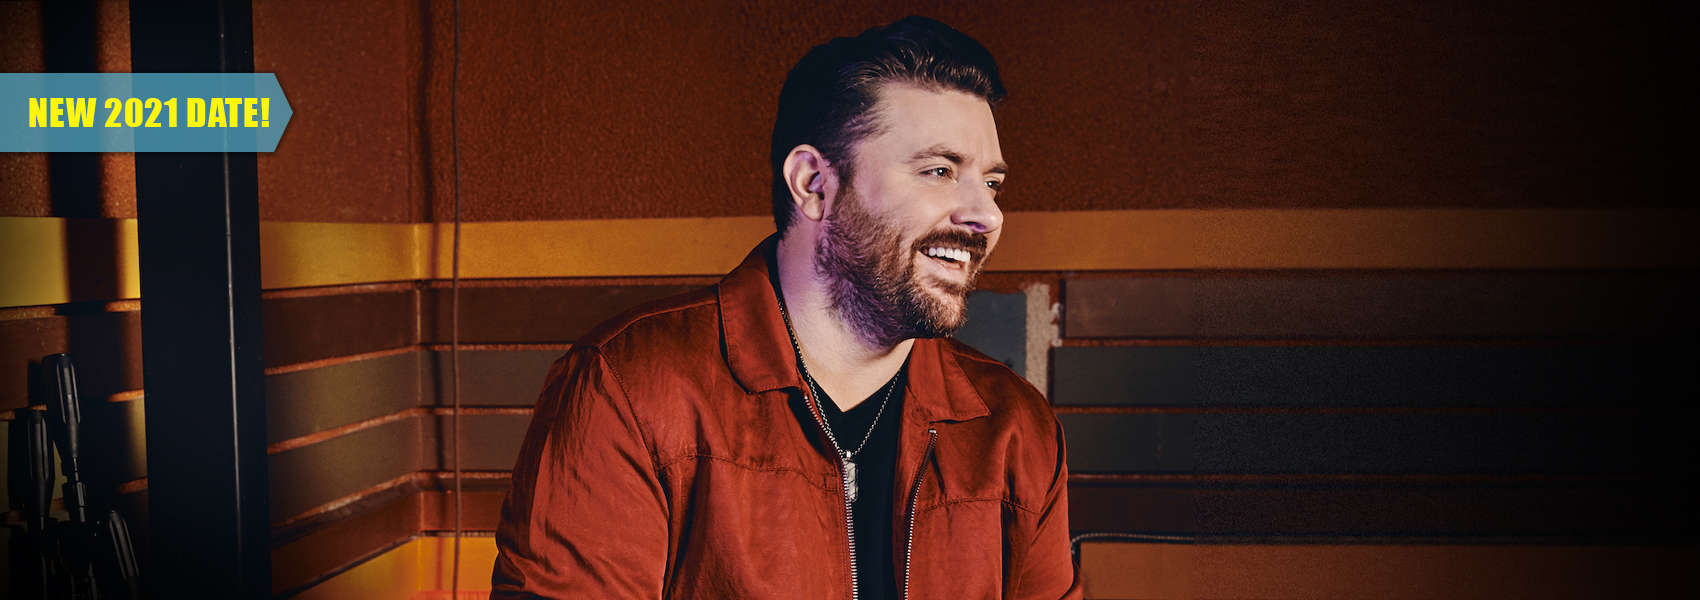 Chris Young New 2021 Date